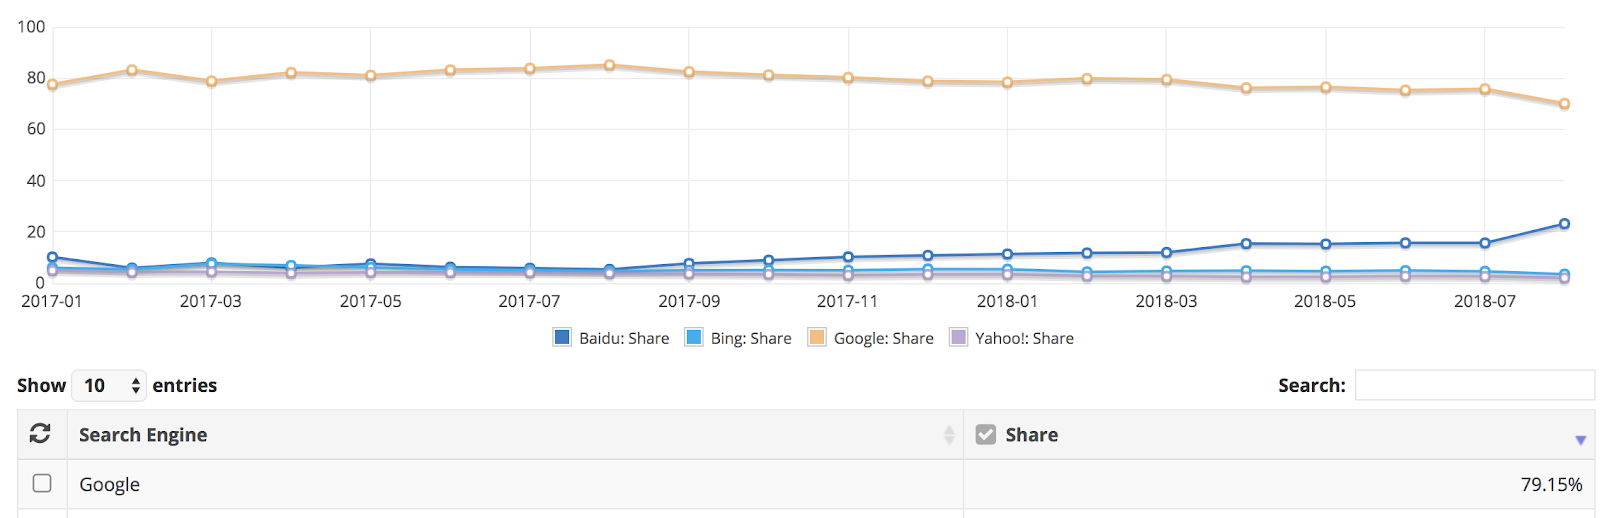 Search Versus Display image 2: search engine market share